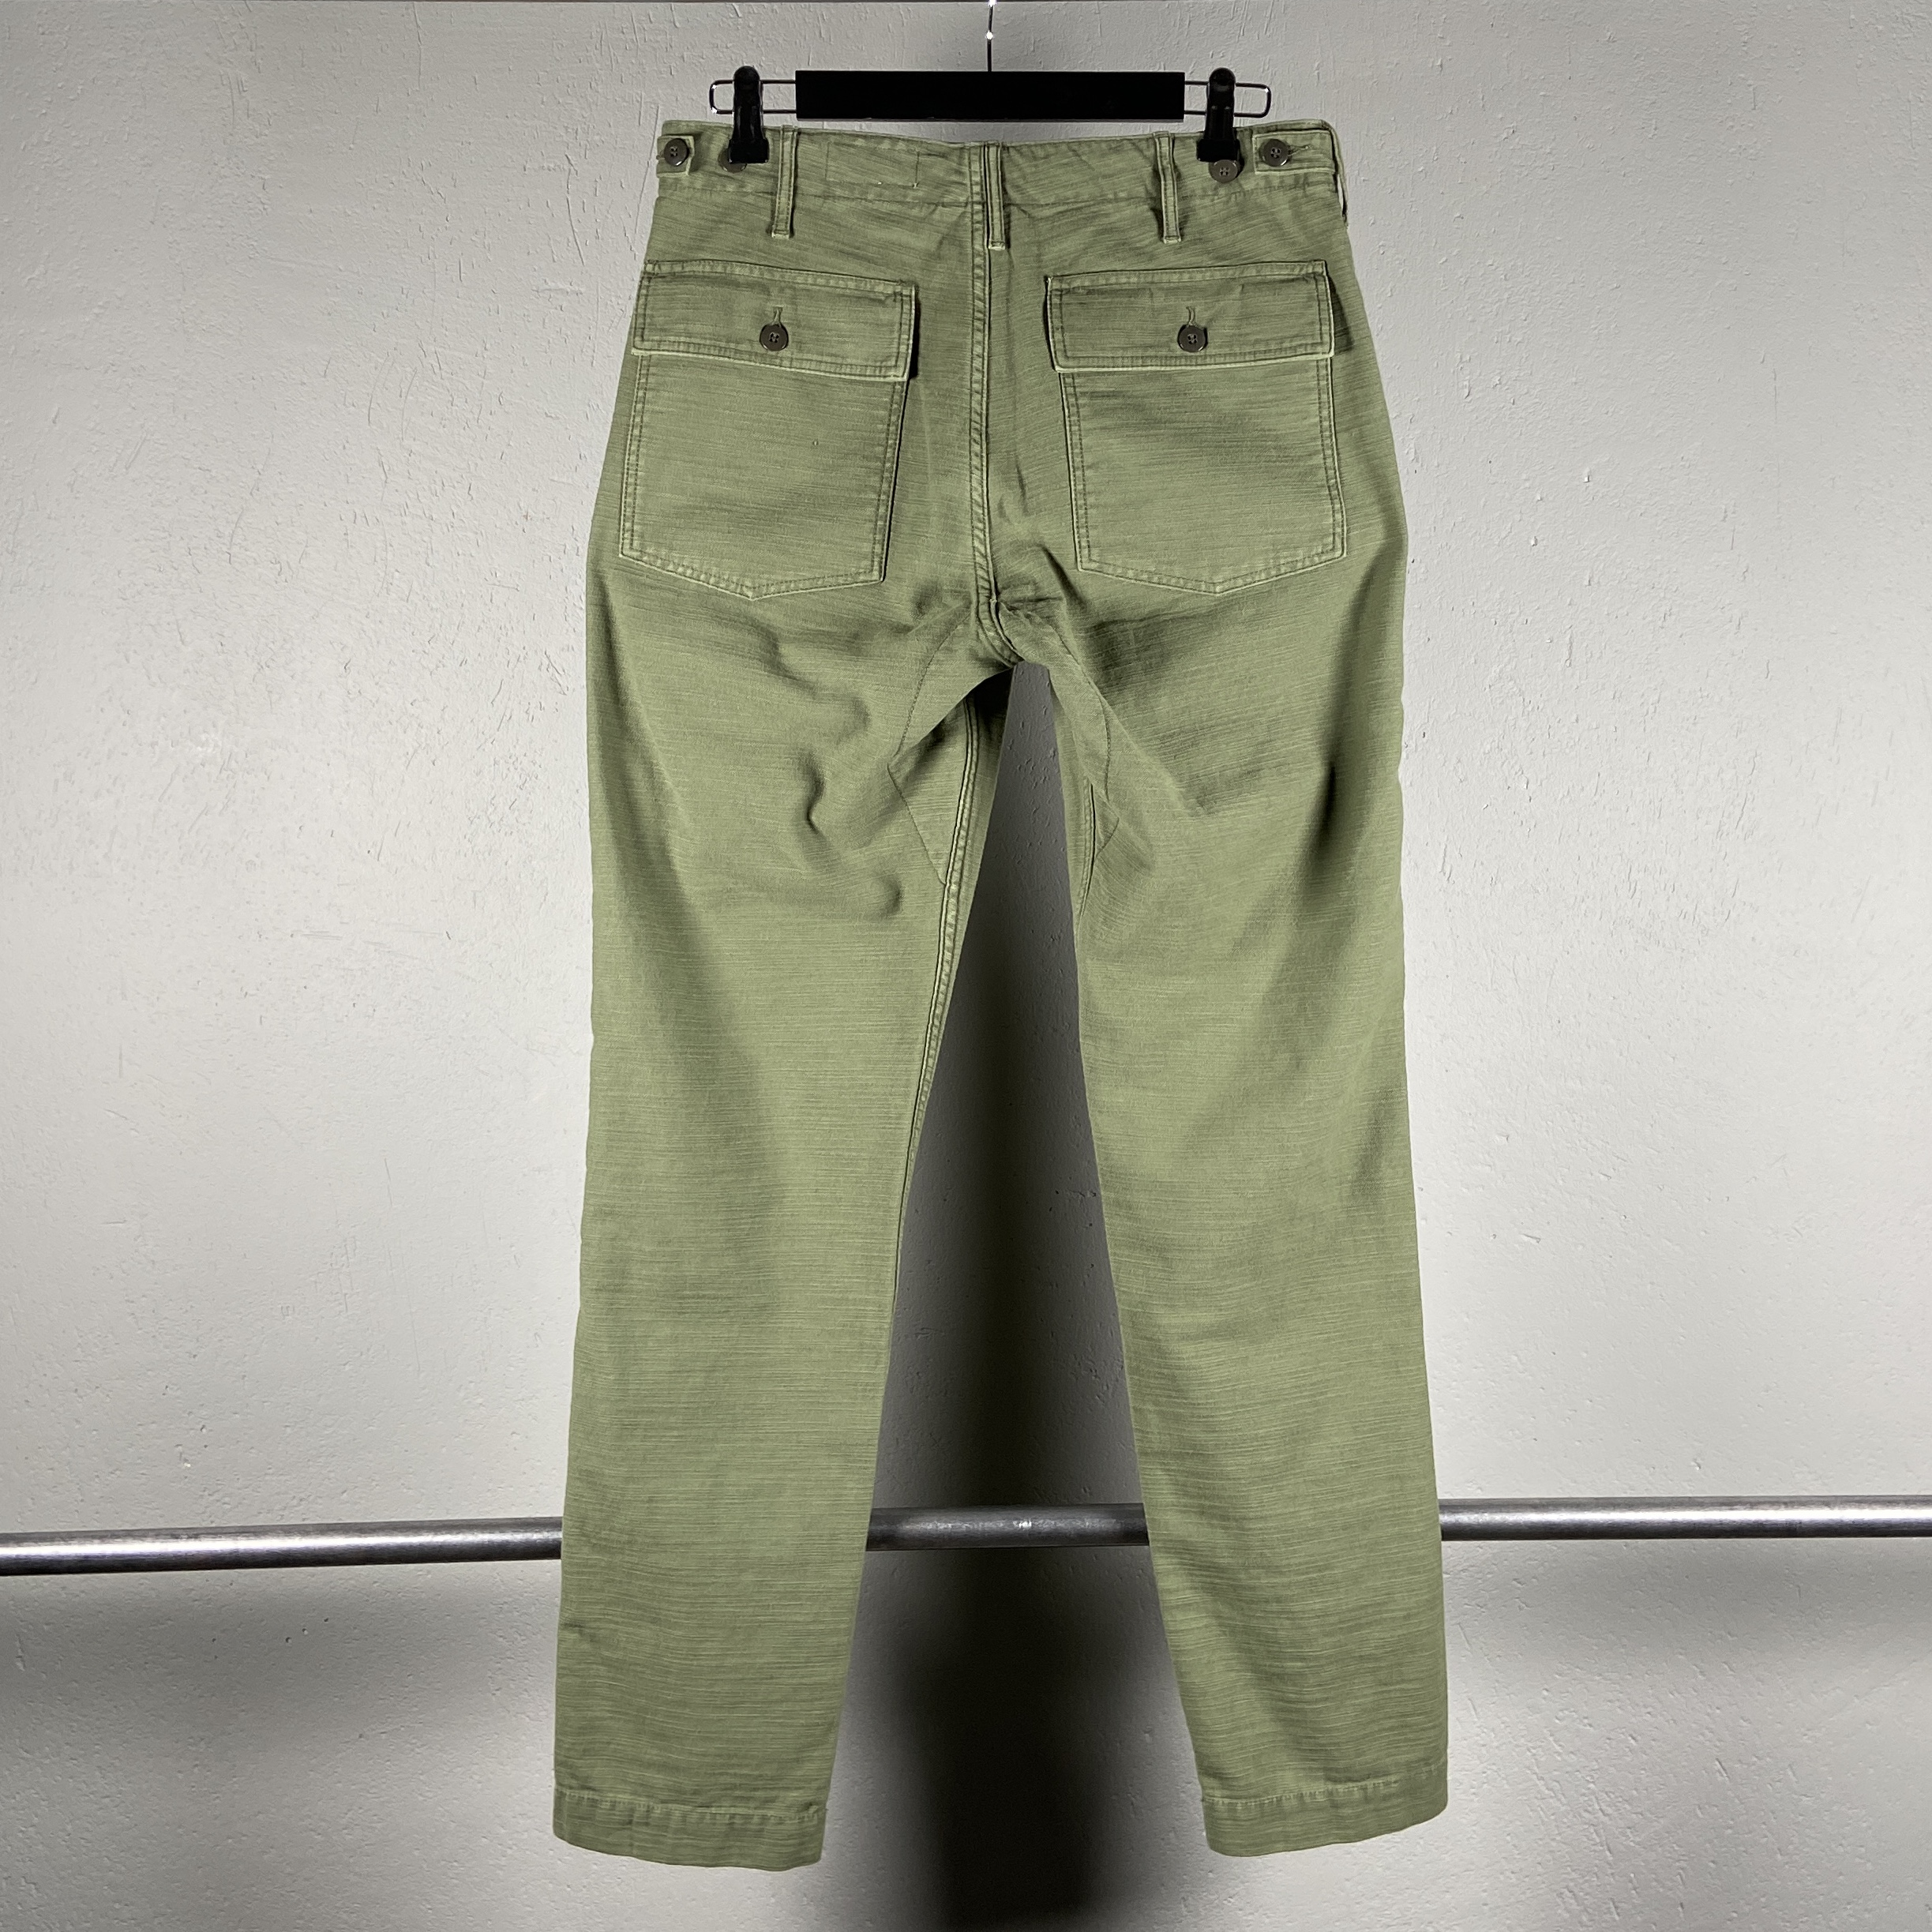 Utility Pant Fatigue green